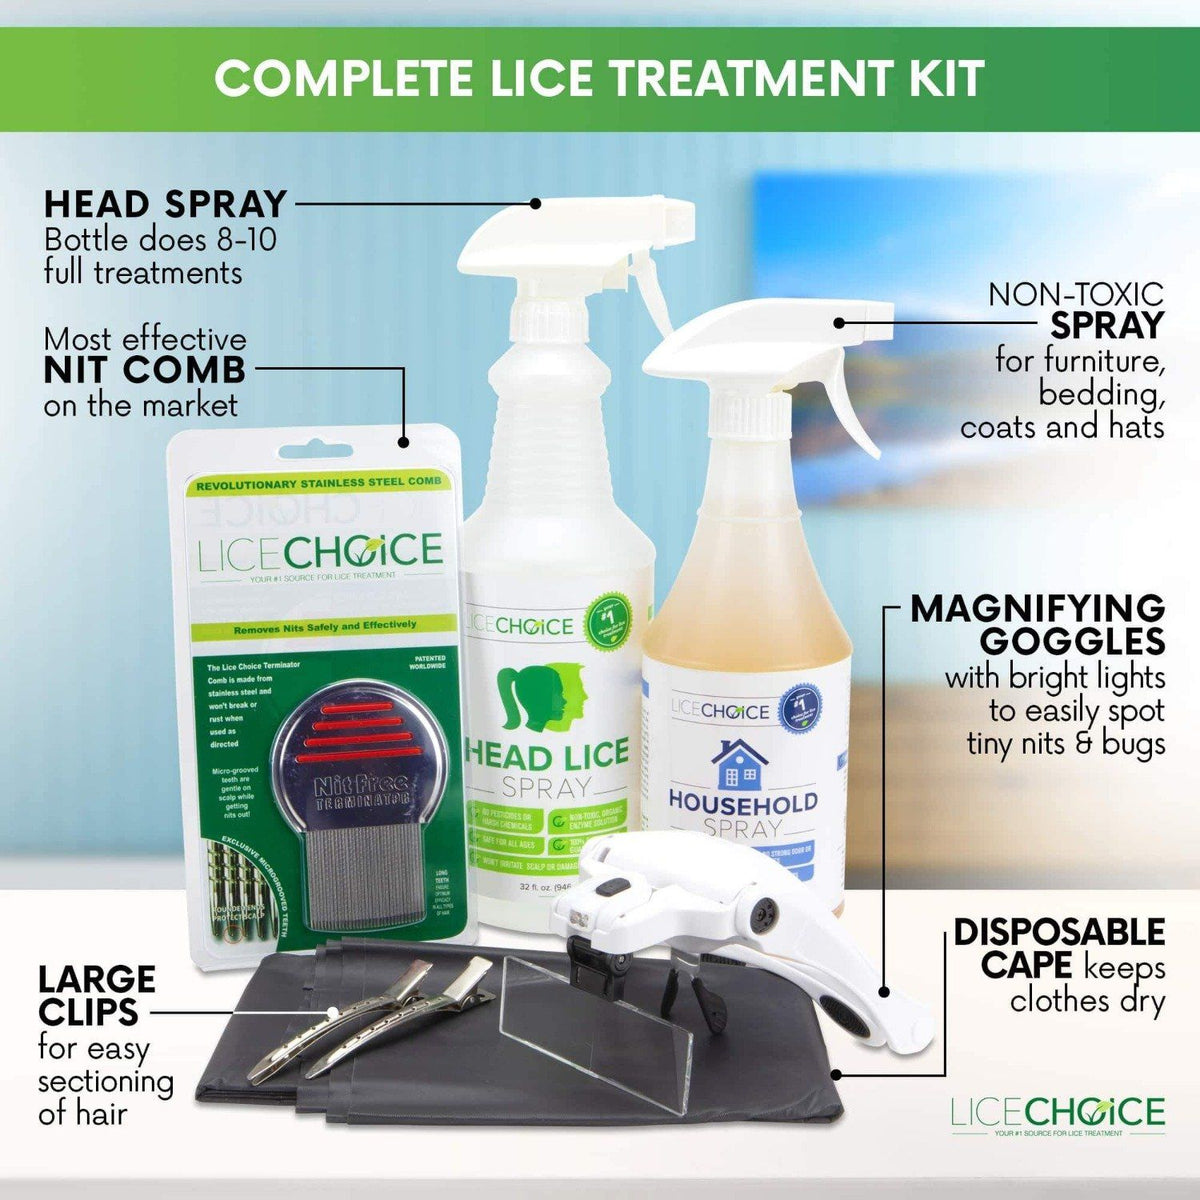 Lice Choice Head and Household Lice Treatment Kit with Terminator Nit Comb, Magnifying Goggles, Disposable Cape, and Hair Clips